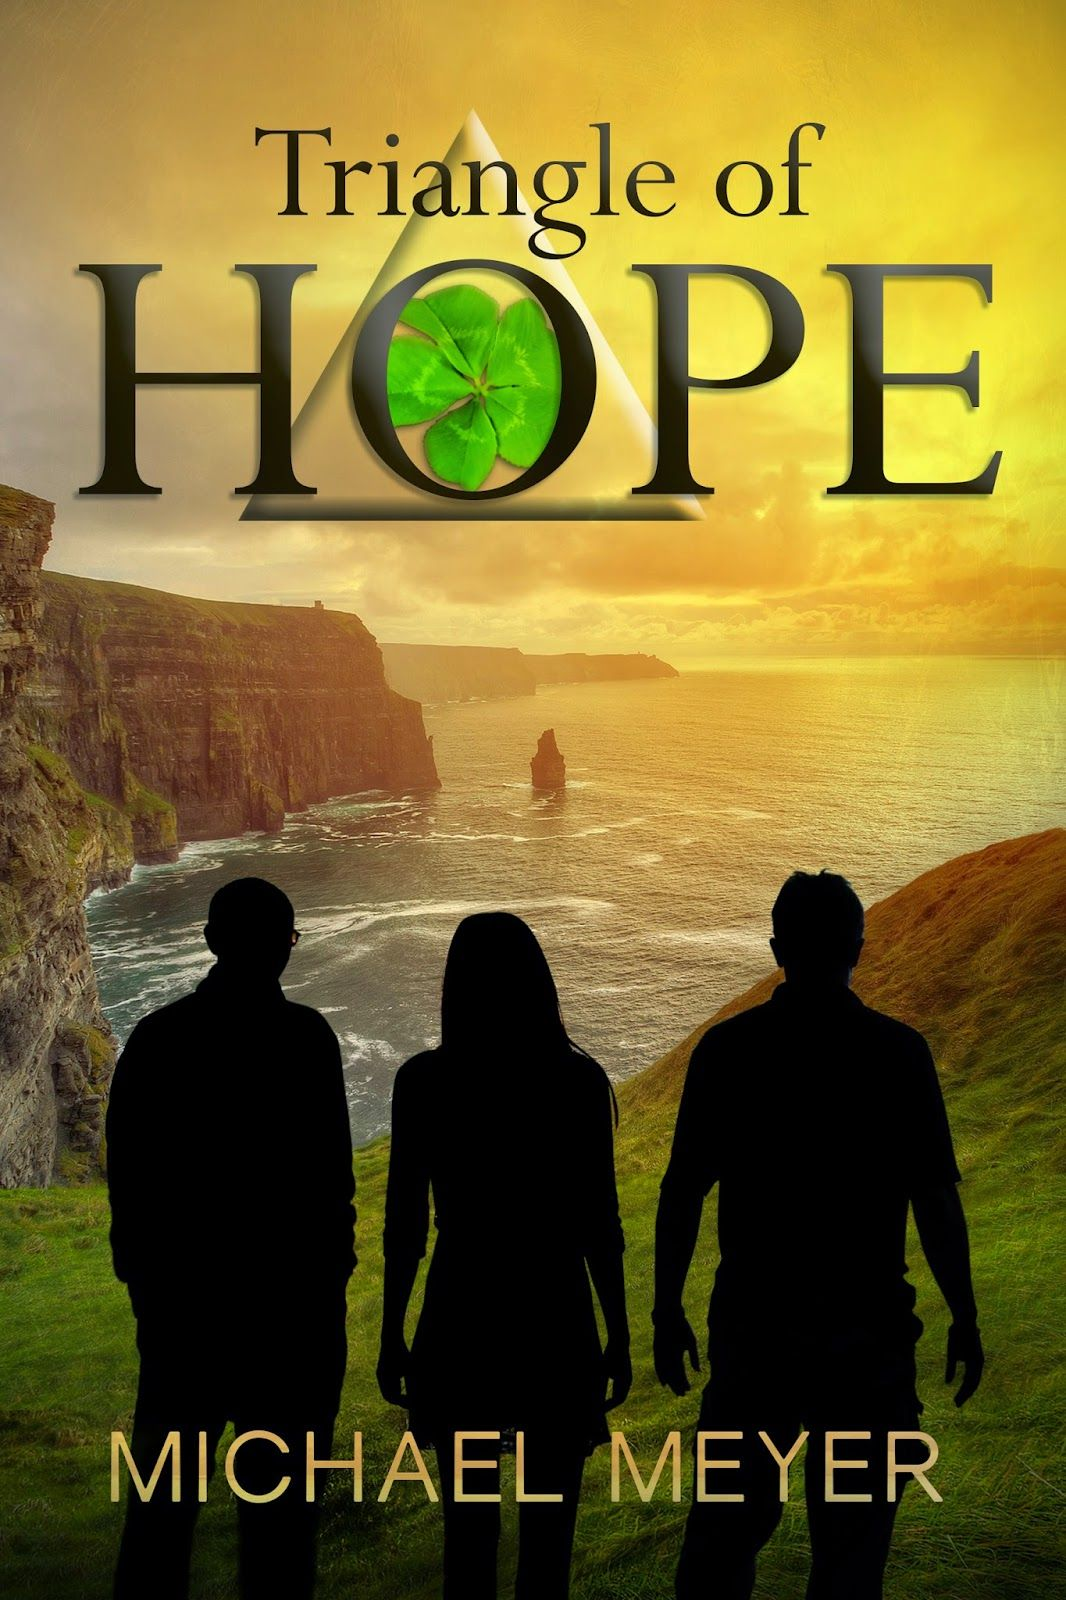 A Girl and Her Kindle: Triangle of Hope by Michael Meyer Review